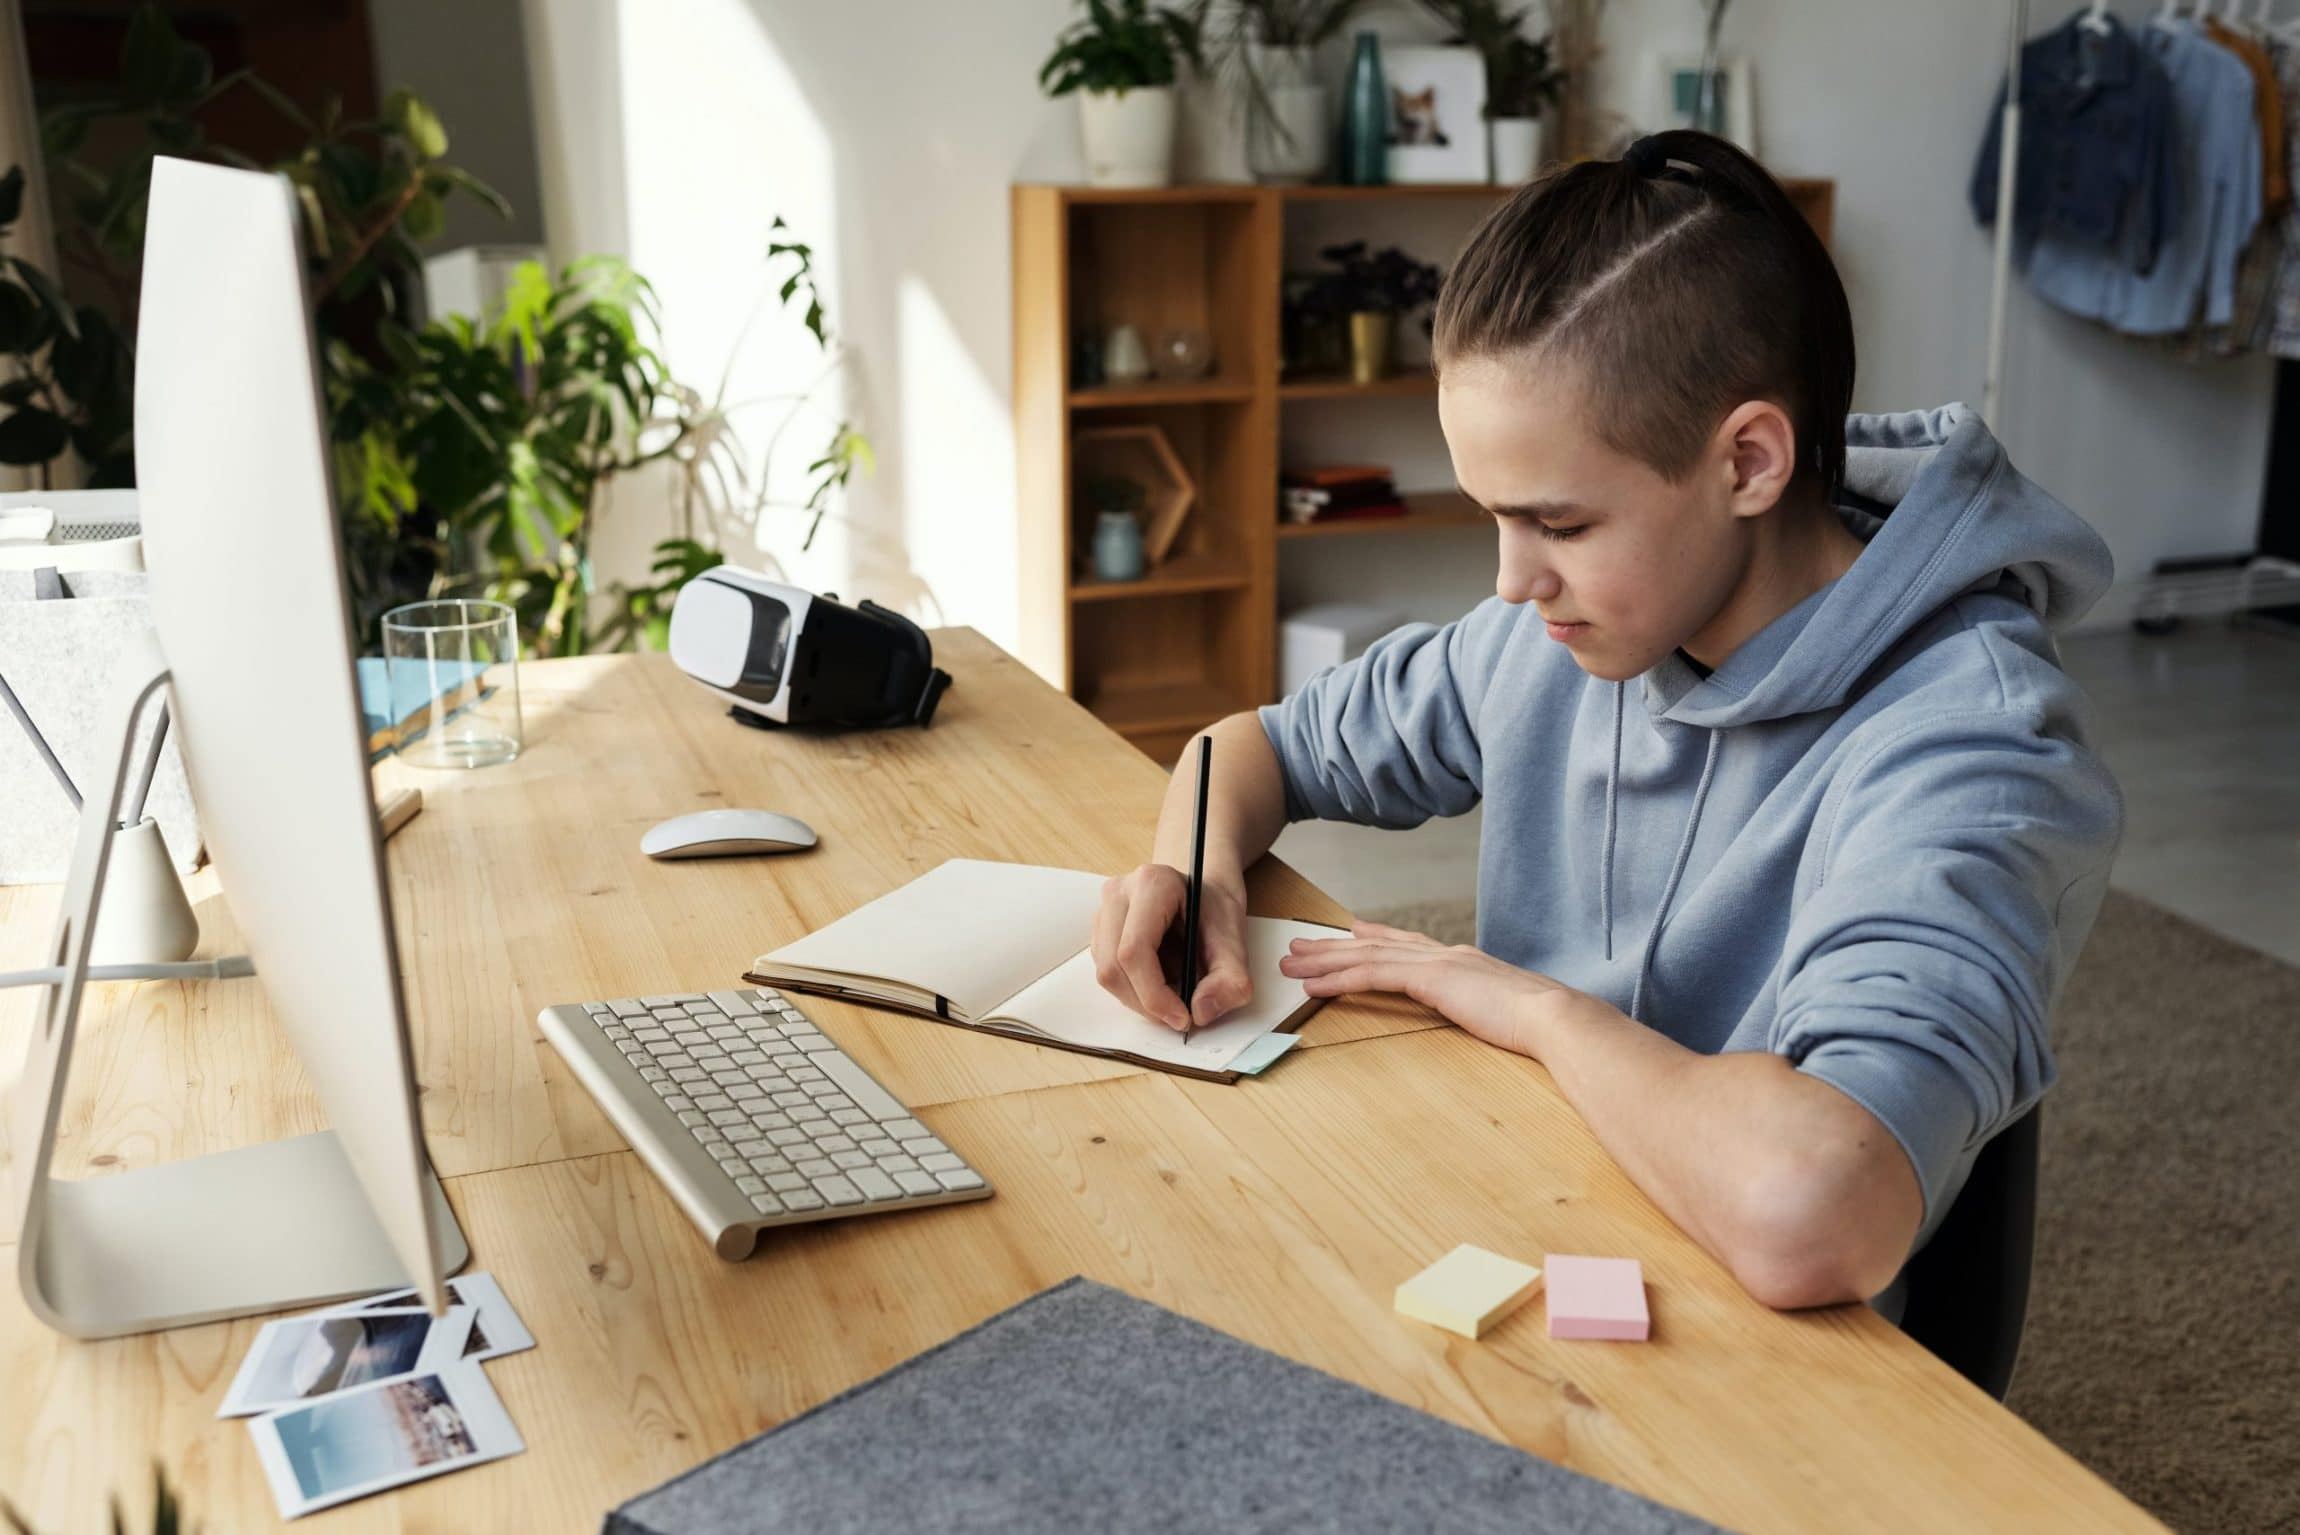 Mental Health Effects of Online Learning